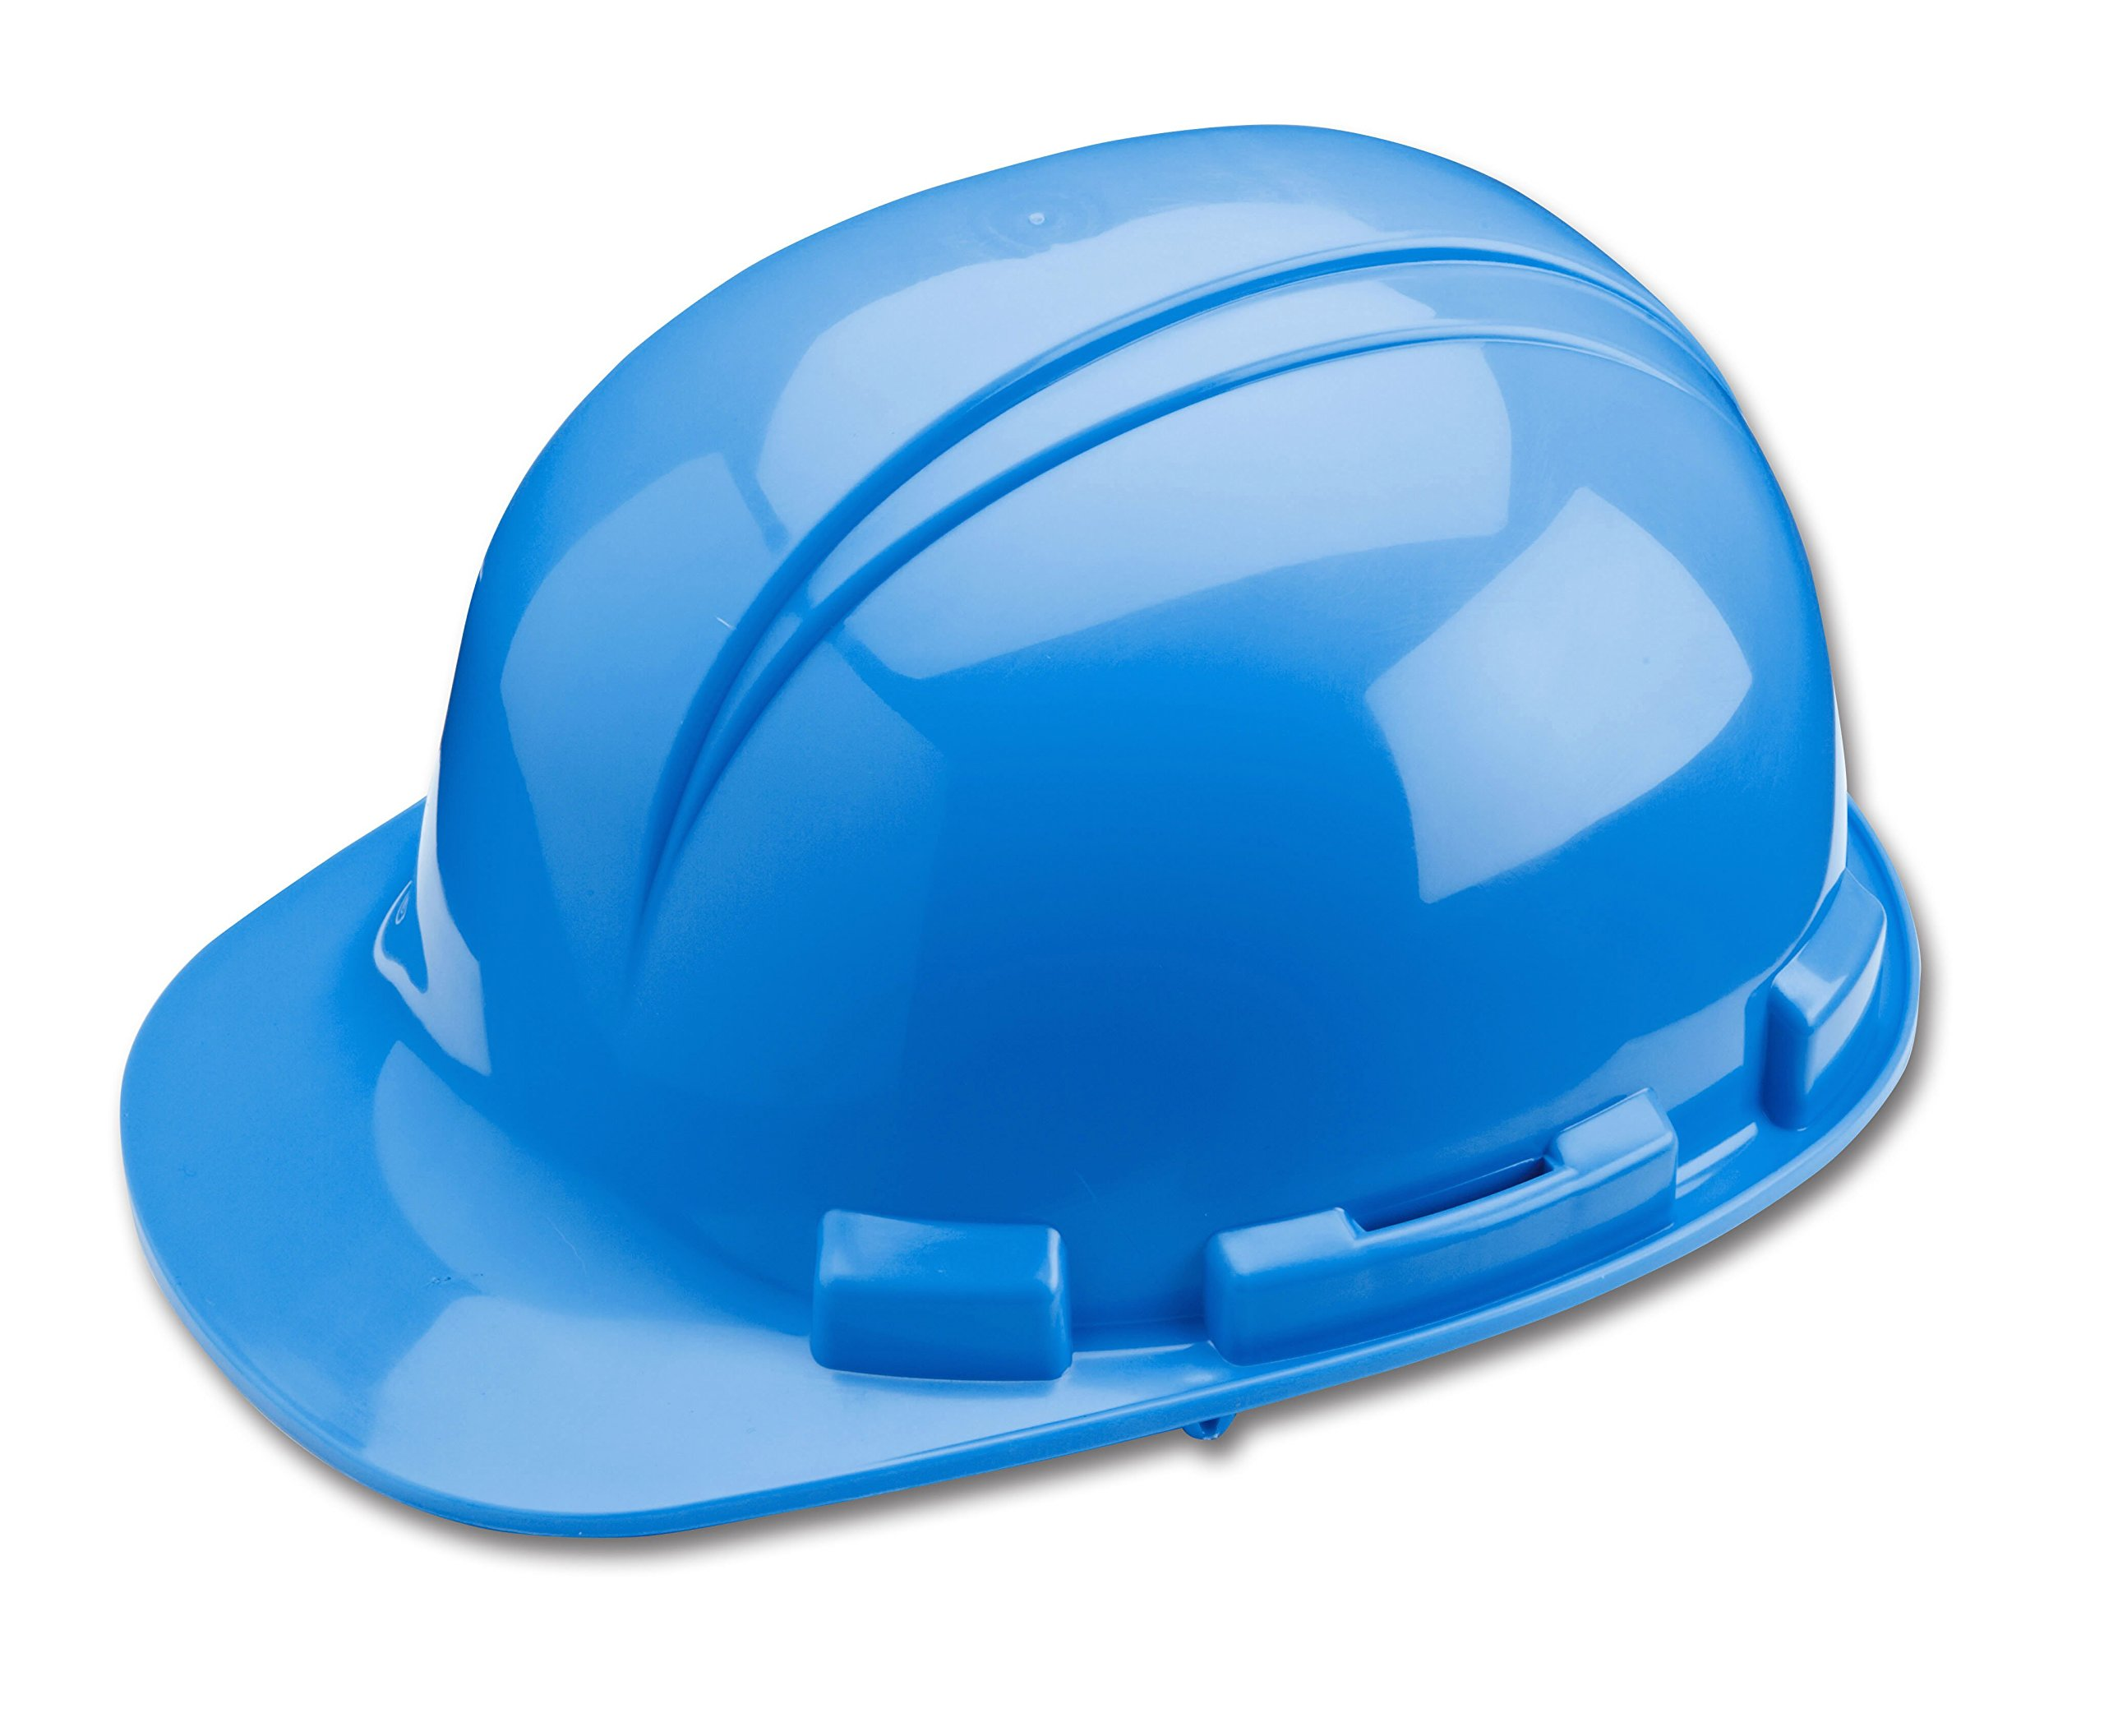 Dynamic Safety HP221R/07 Whistler Hard Hat with 4-Point Plastic Suspension and Sure-Lock Ratchet Adjustment, ANSI Type I, Sky Blue by Dynamic Safety (Image #1)